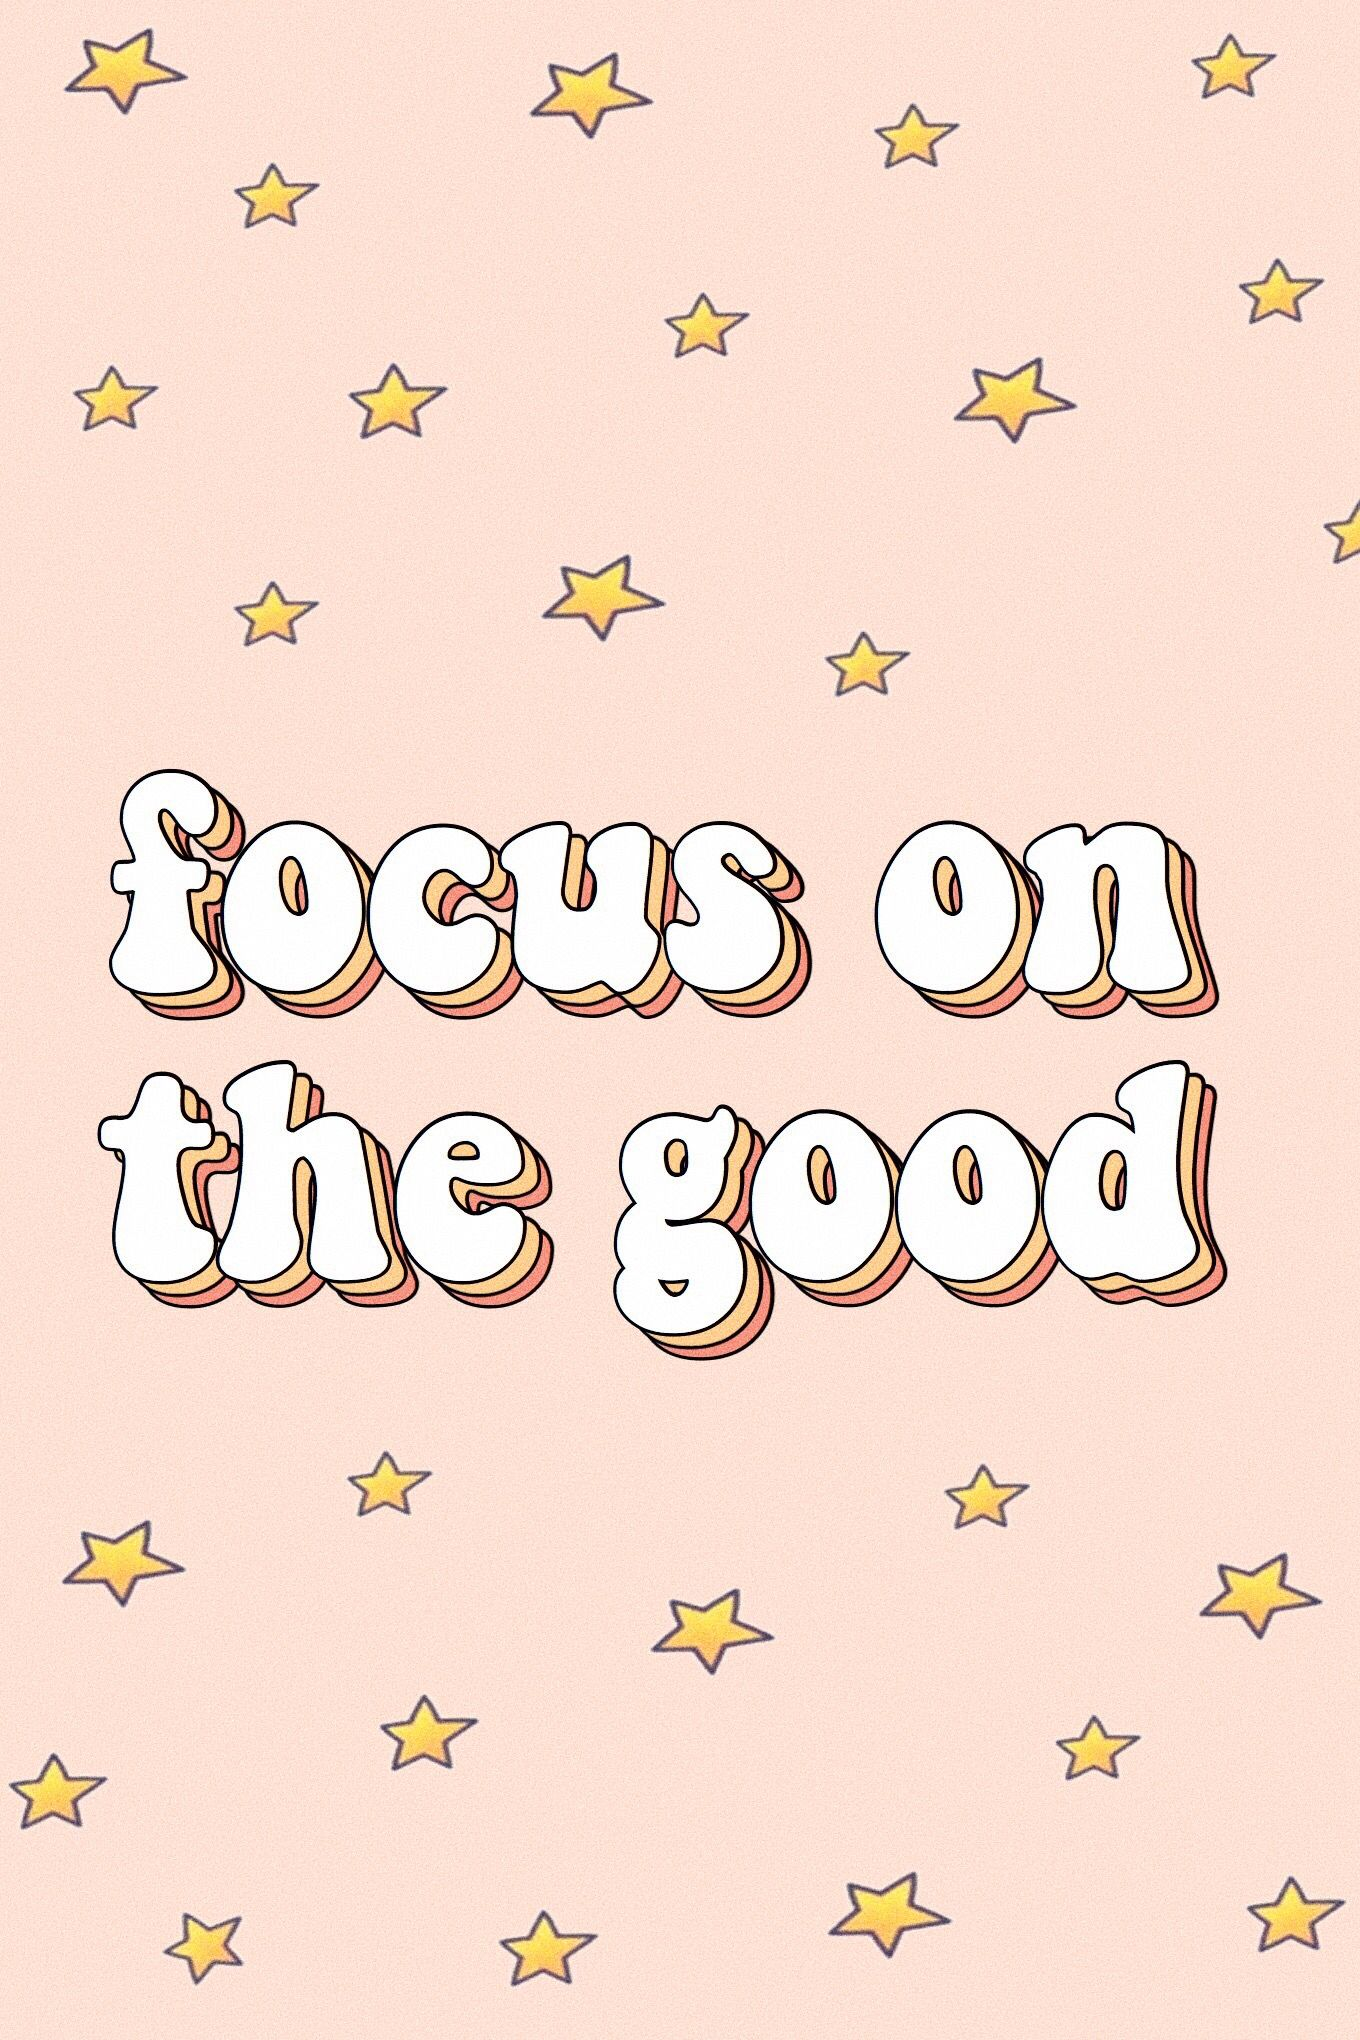 Focus On The Good Words Quotes Positivity Happiness Motivate Vsco Aesthetic Tumblr Retro Stars Pink Words Wallpaper Wallpaper Quotes Cool Words